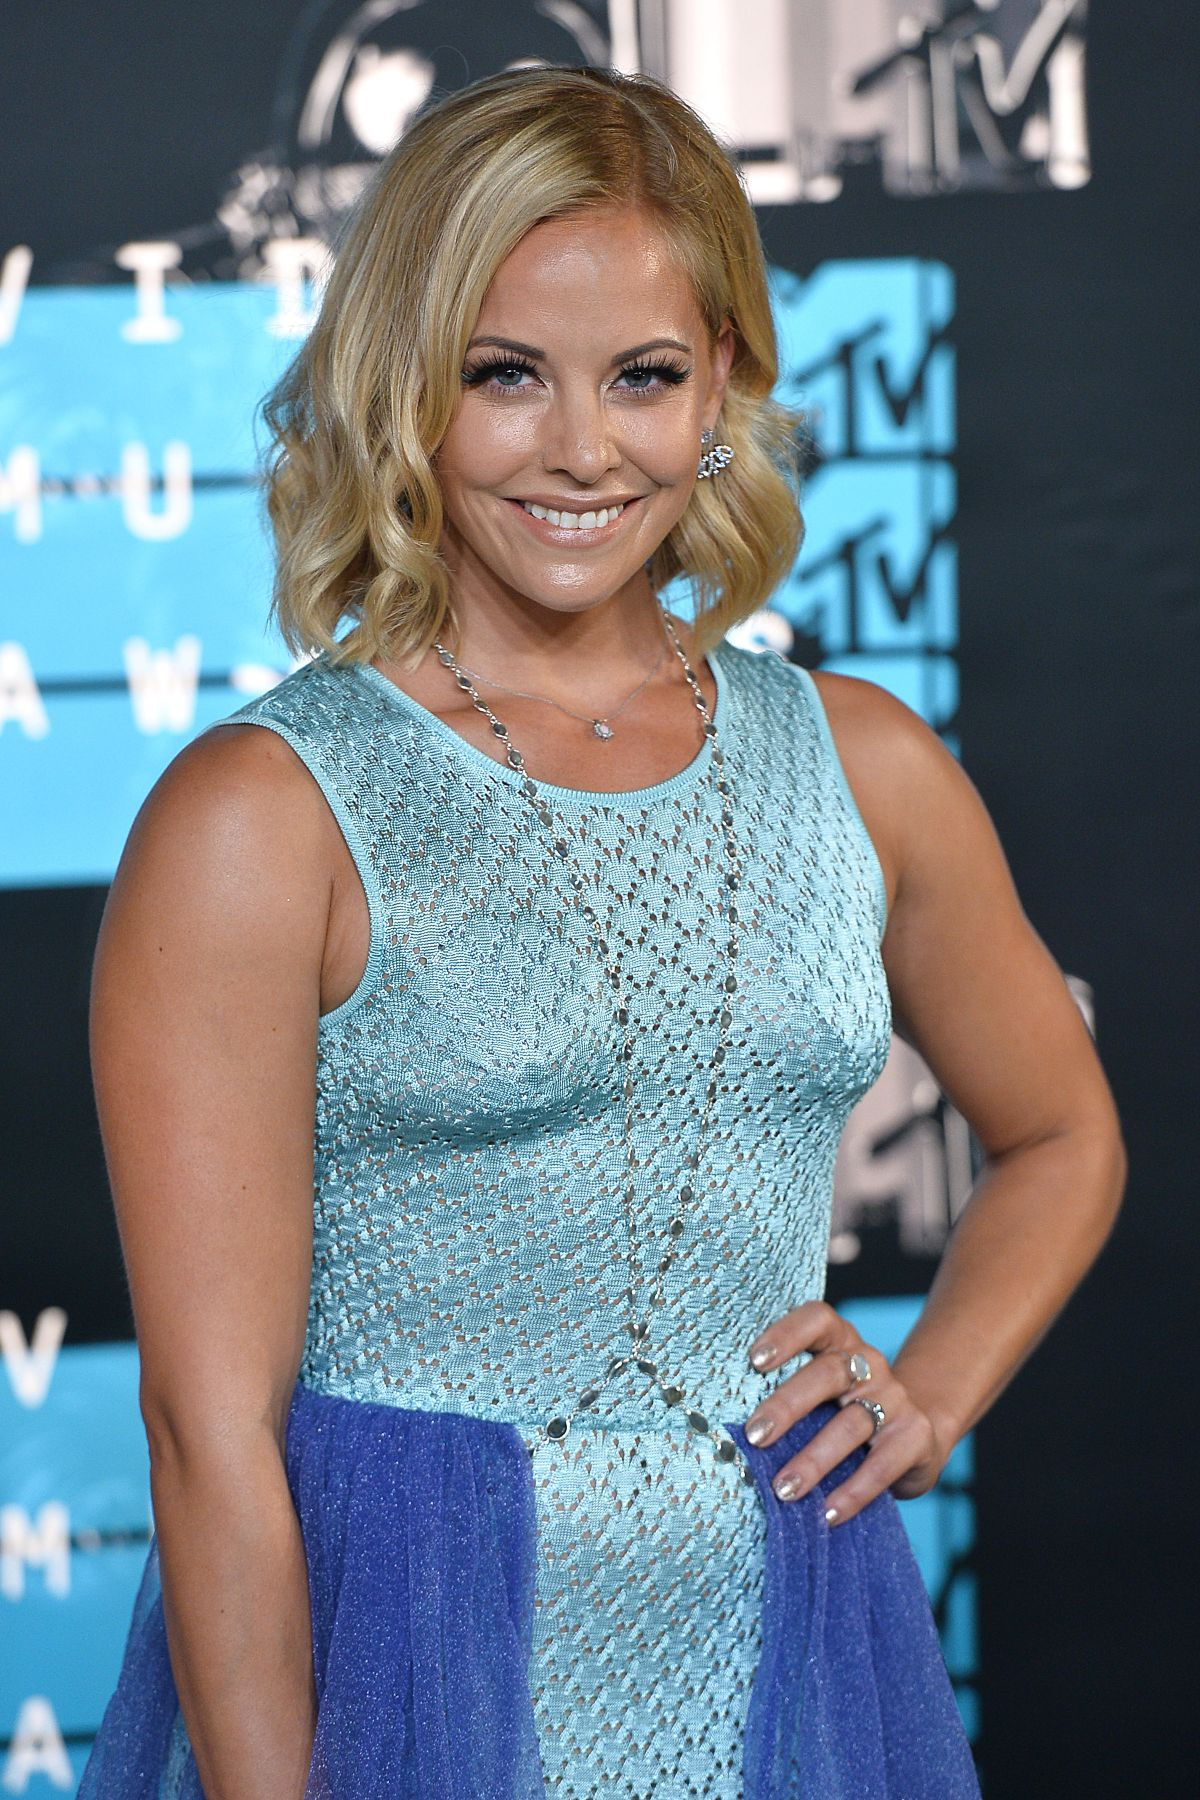 AMY PAFFRATH at MTV Video Music Awards 2015 in Los Angeles